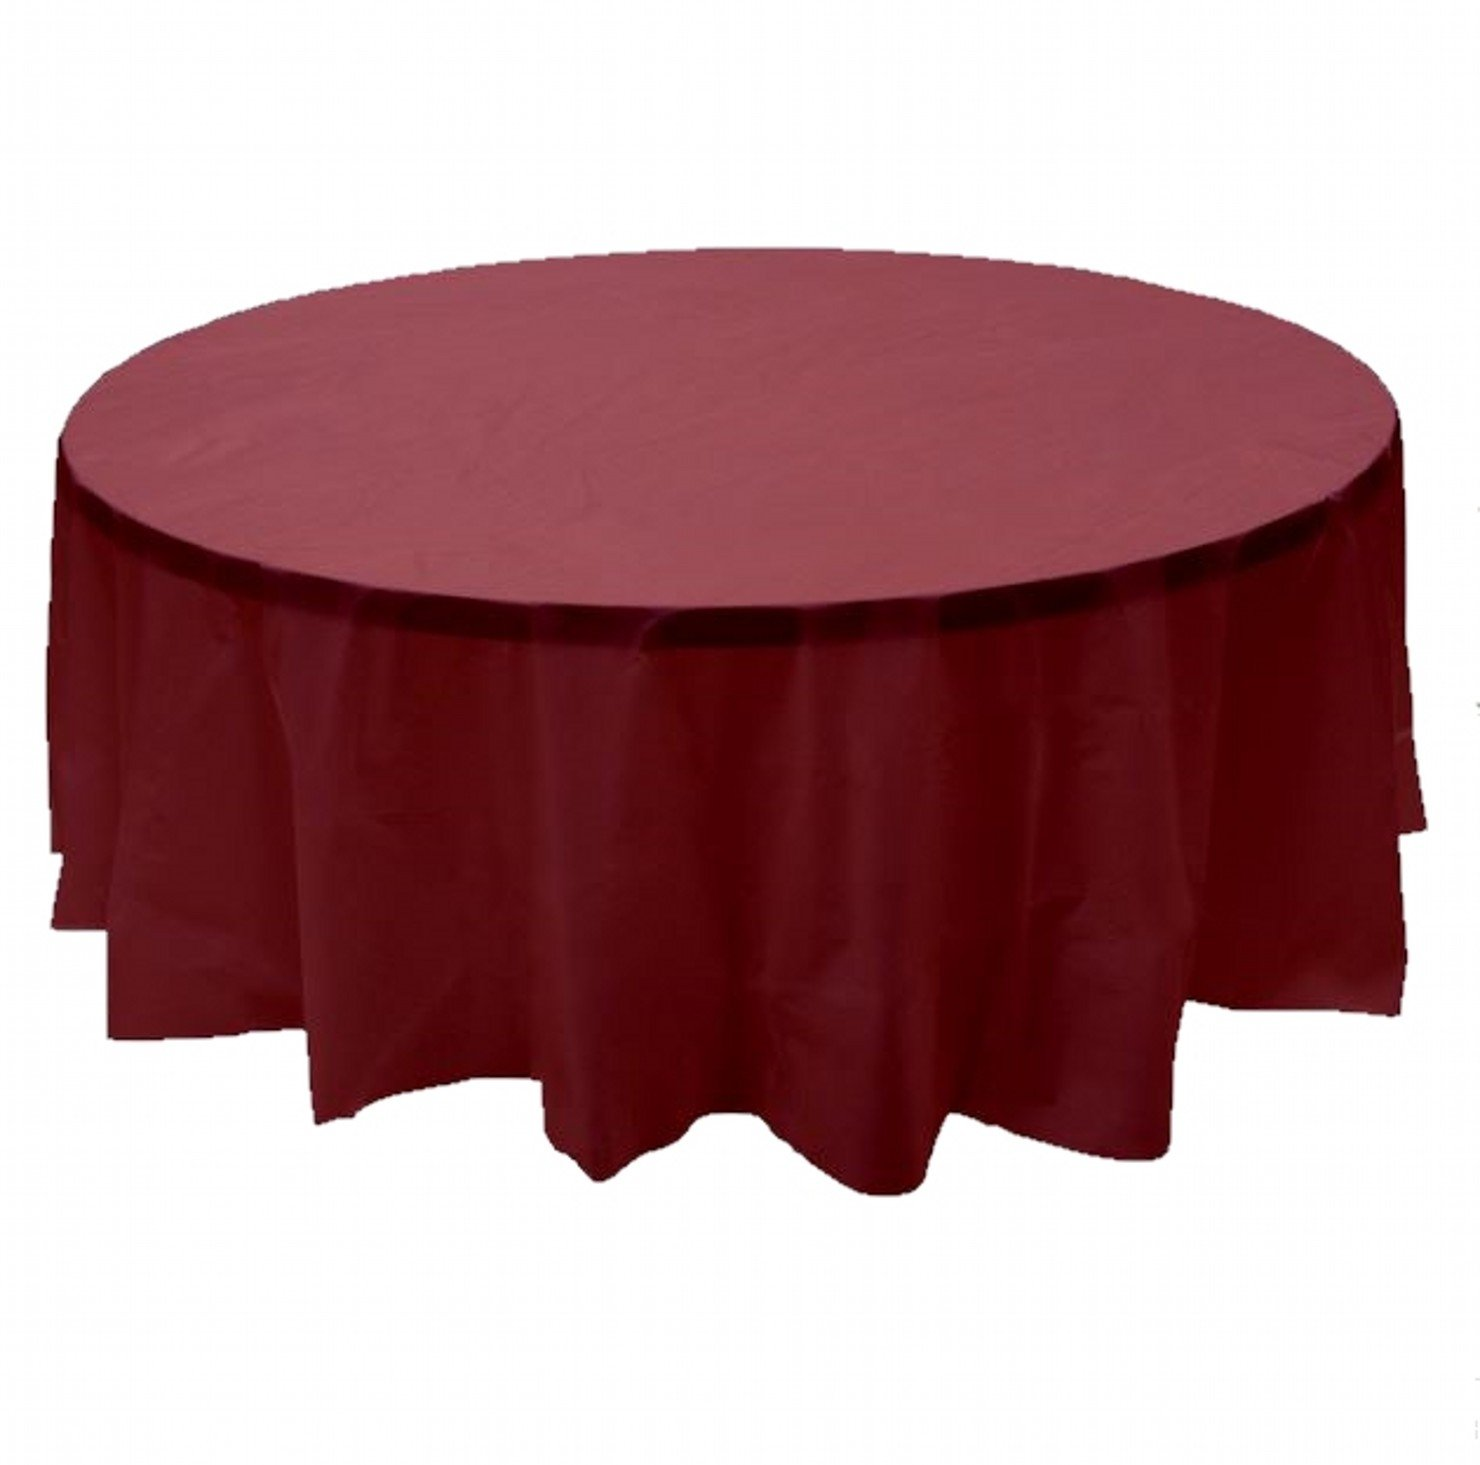 24 pcs (1 case) of Plastic Heavy Duty Premium Round tablecloths 84'' Diameter Table Cover - Burgundy